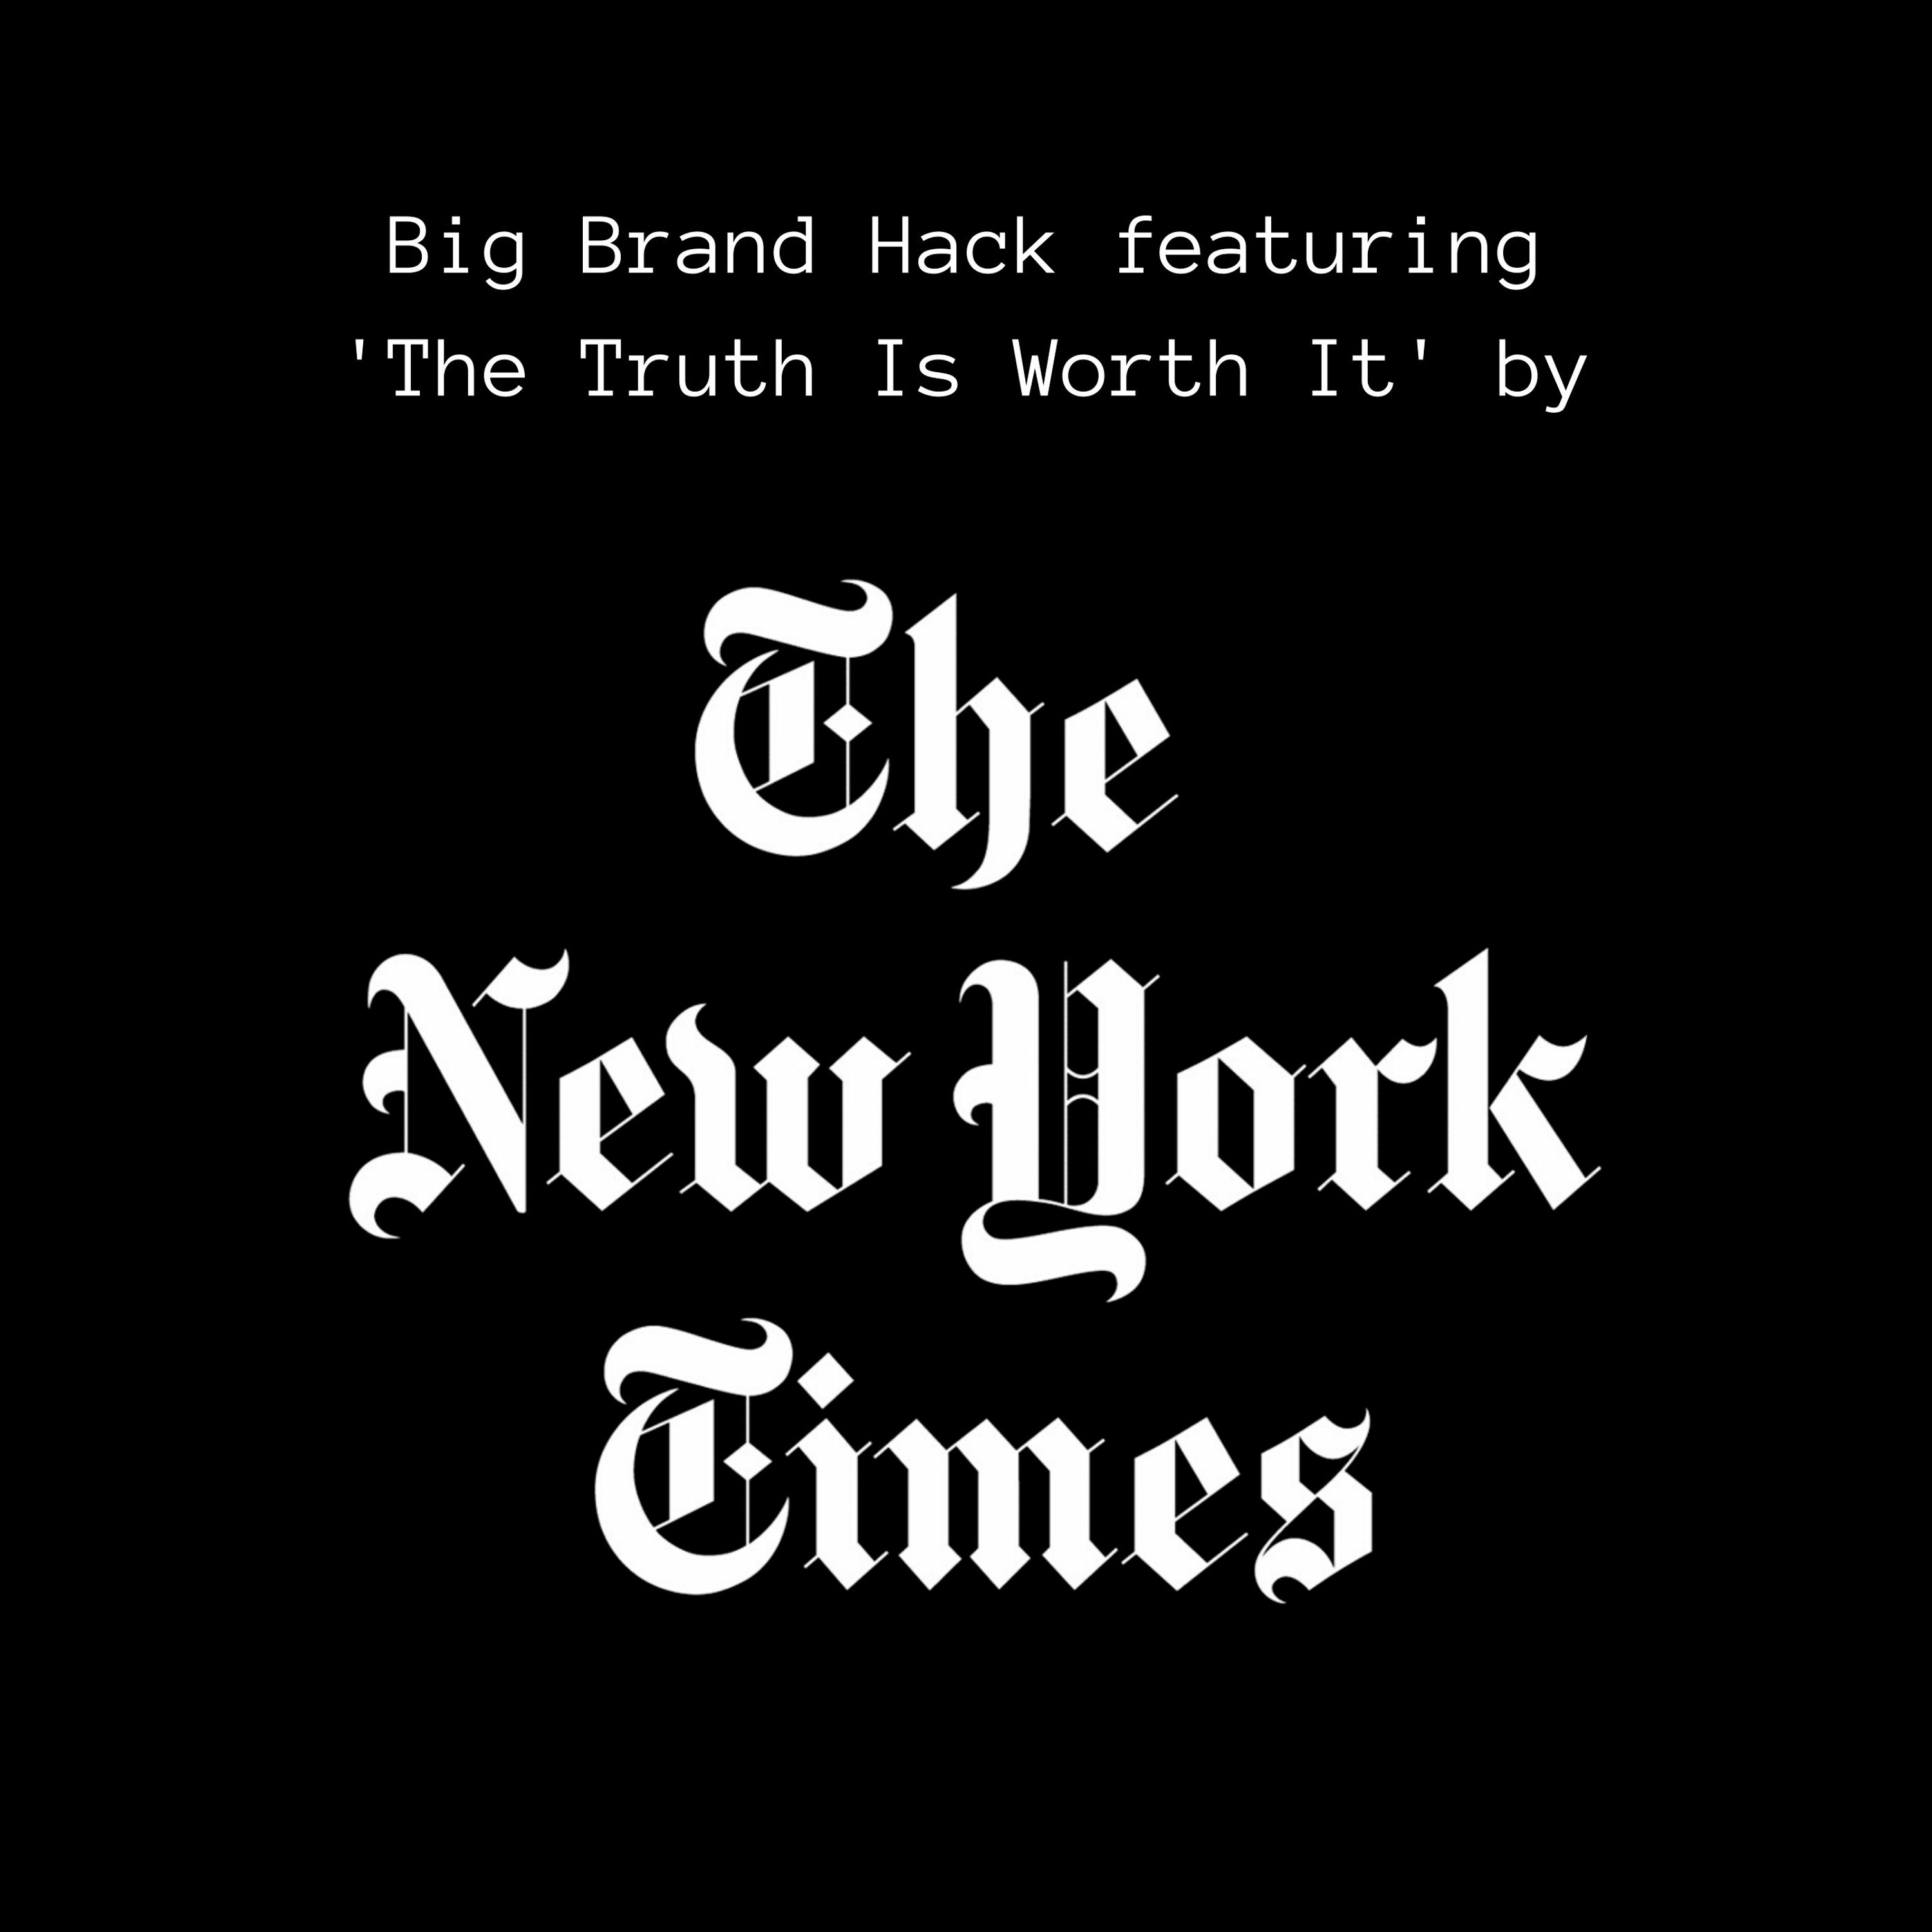 Episode NY Times: Classic Storytelling In The Digital Age